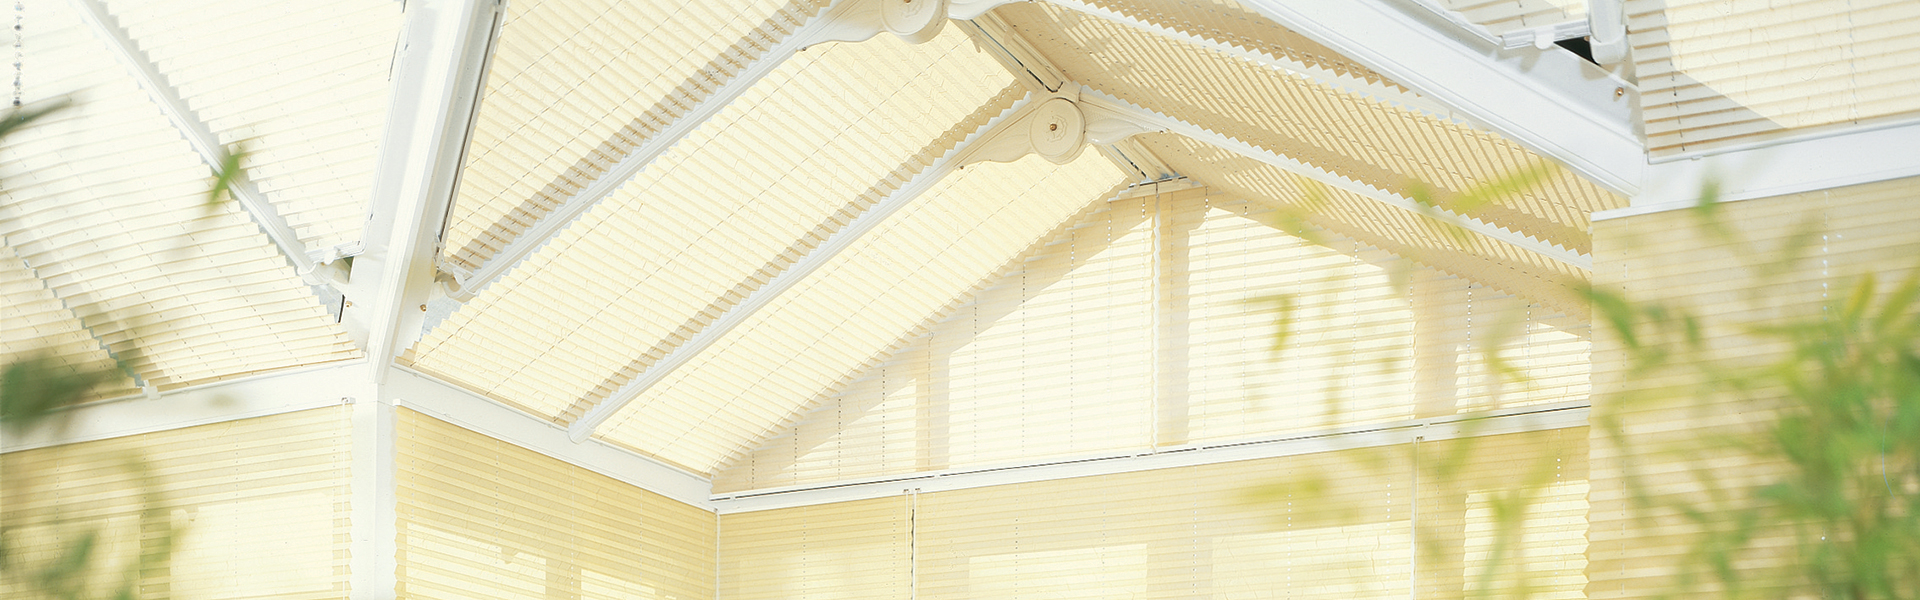 conservatory-roof-blinds-hero-3